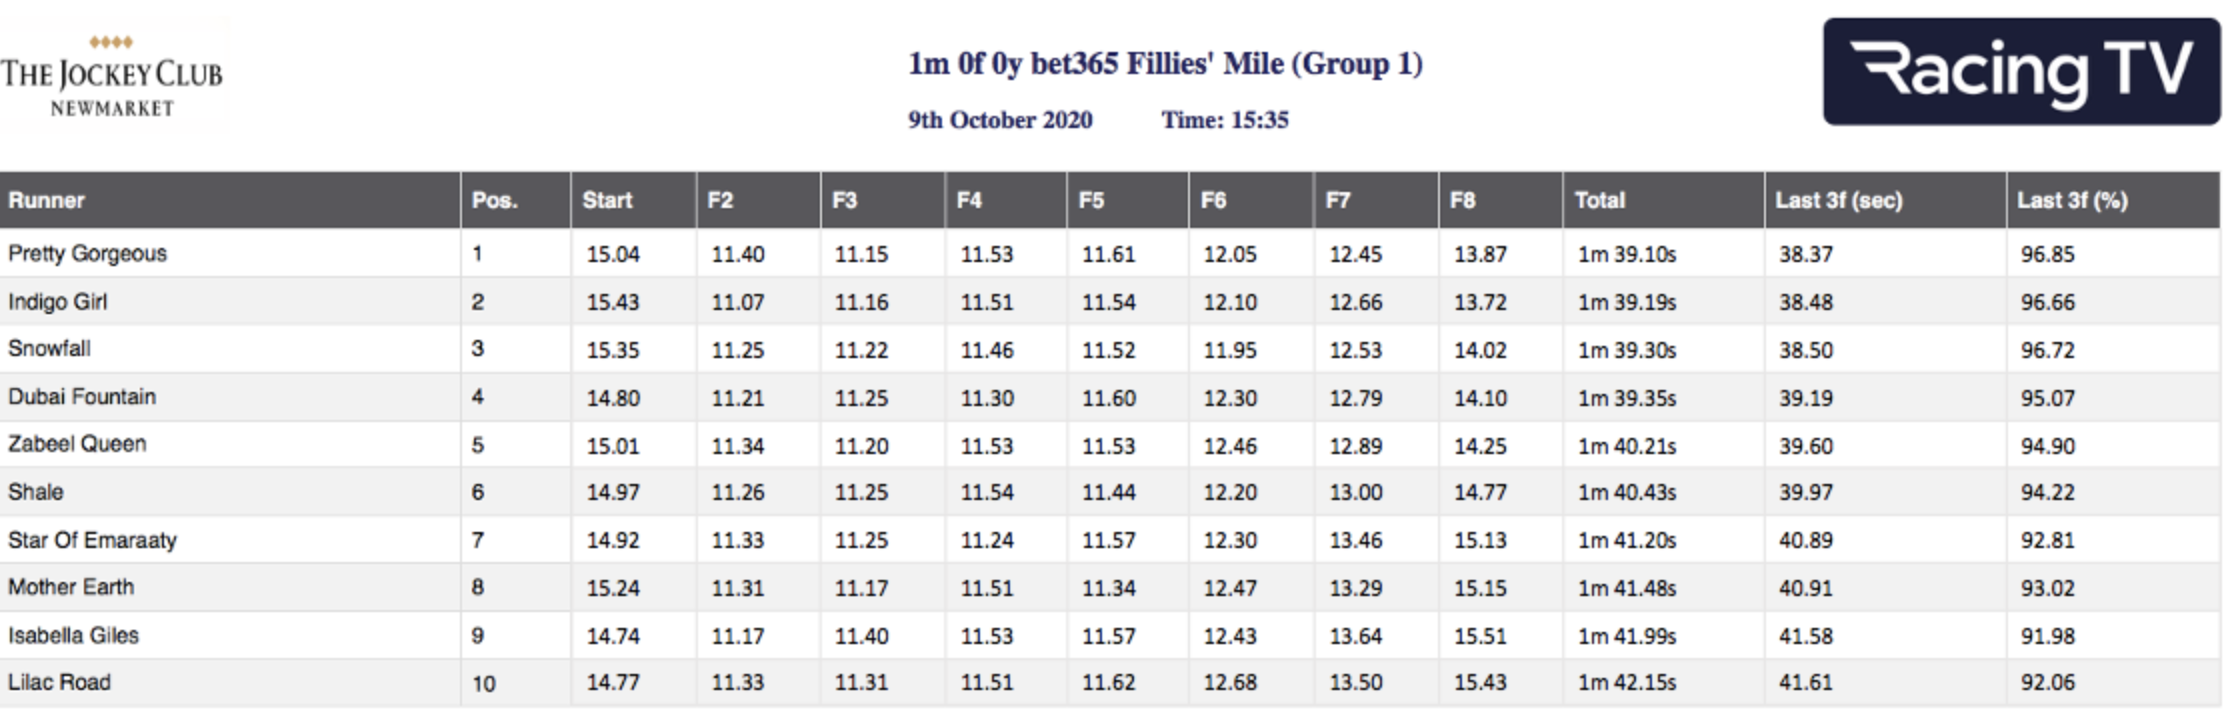 Fillies' Mile - Sectional Times